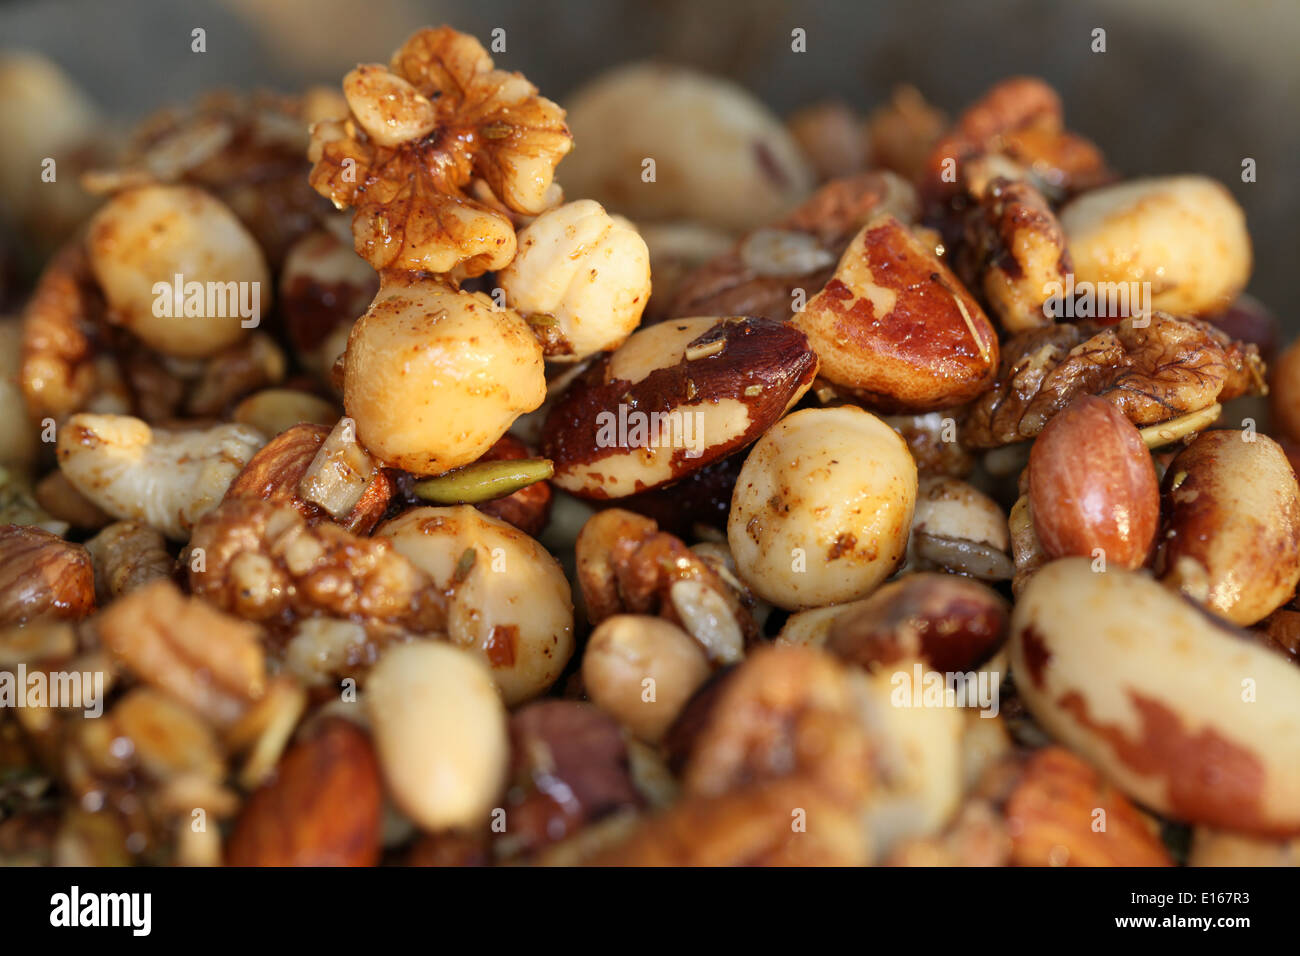 A Nutty,spicy snack. Nuts drizzled with warm spiced honey - Stock Image